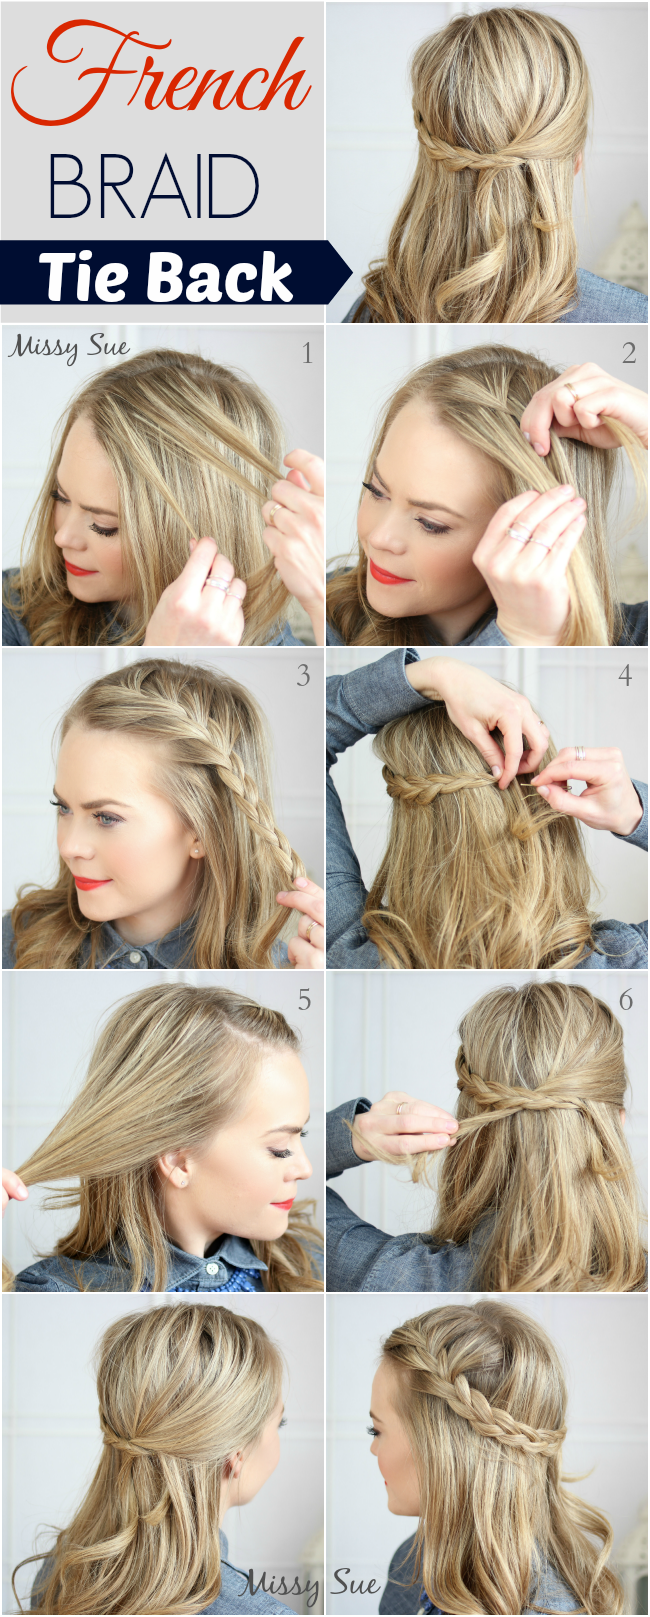 14 Fabulously Cool Braids for All Occasions forecast